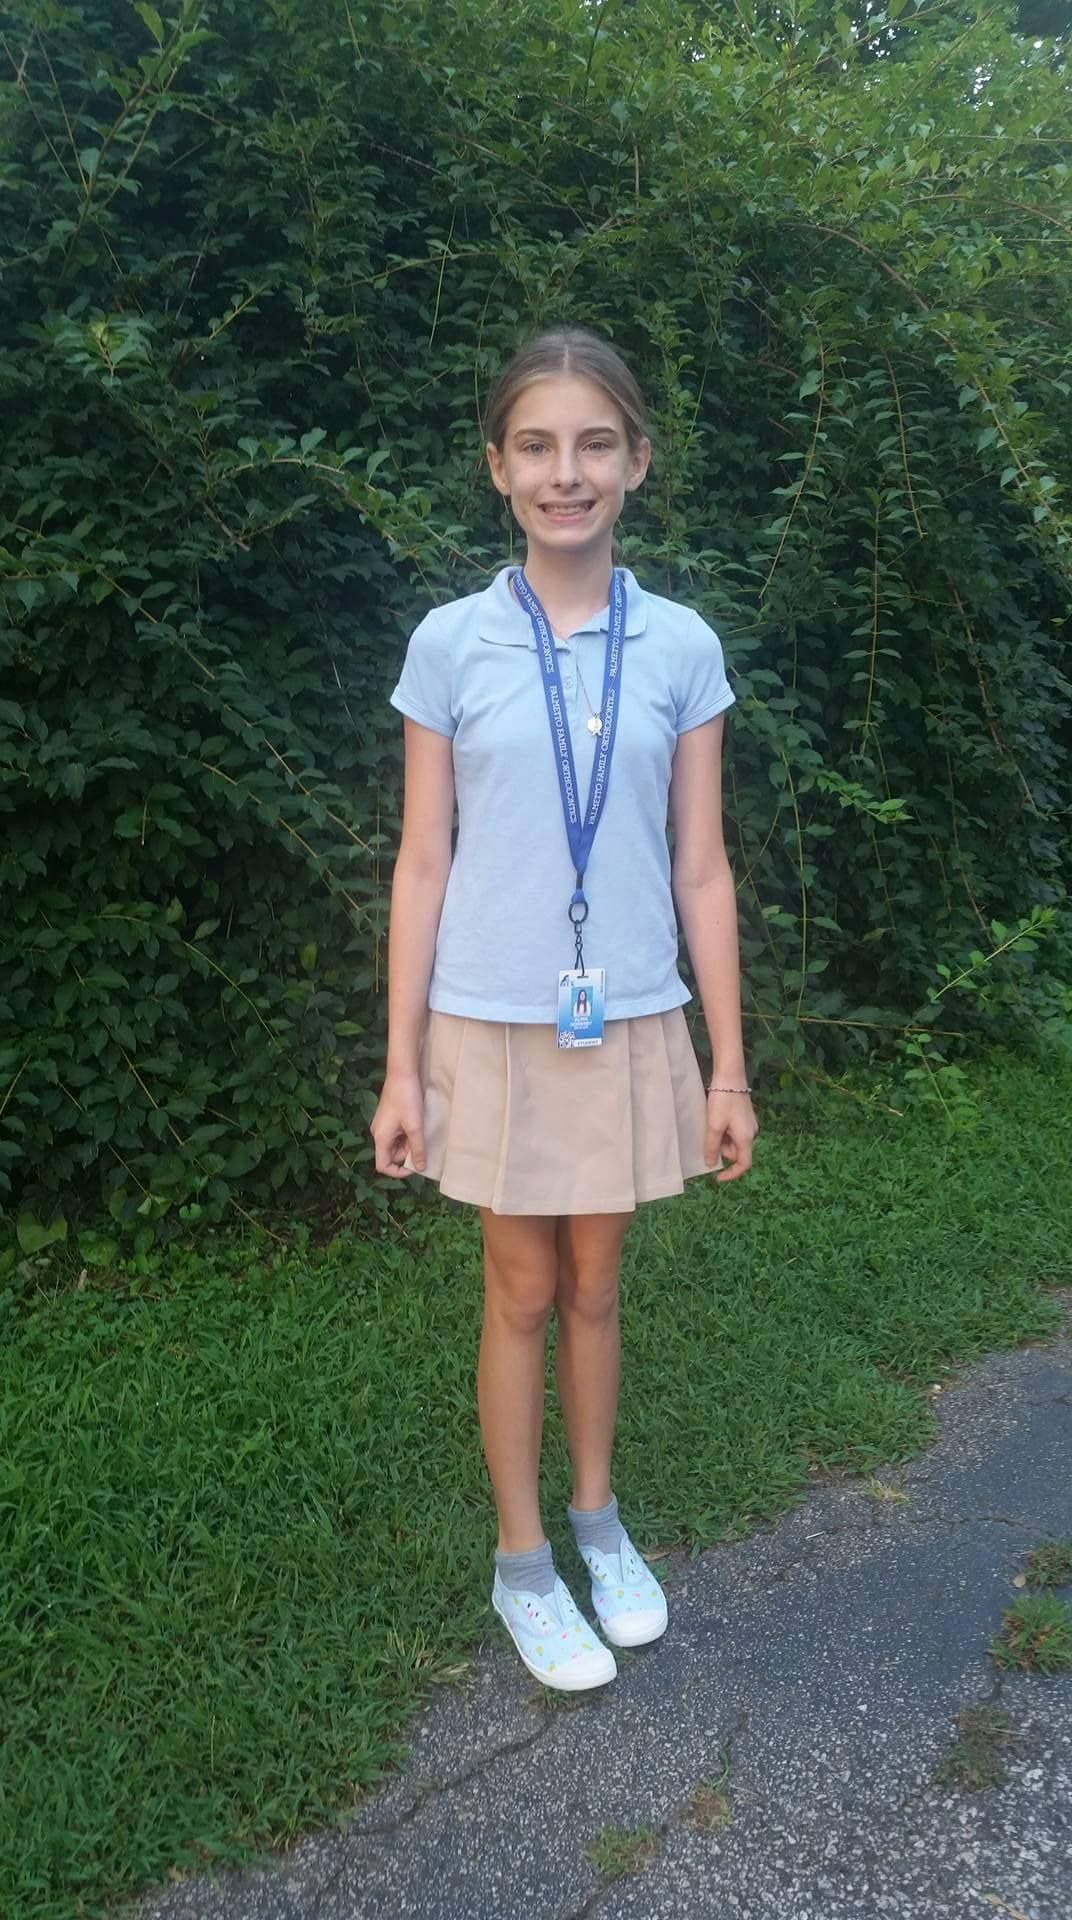 First Day of School Pictures - Photo 96